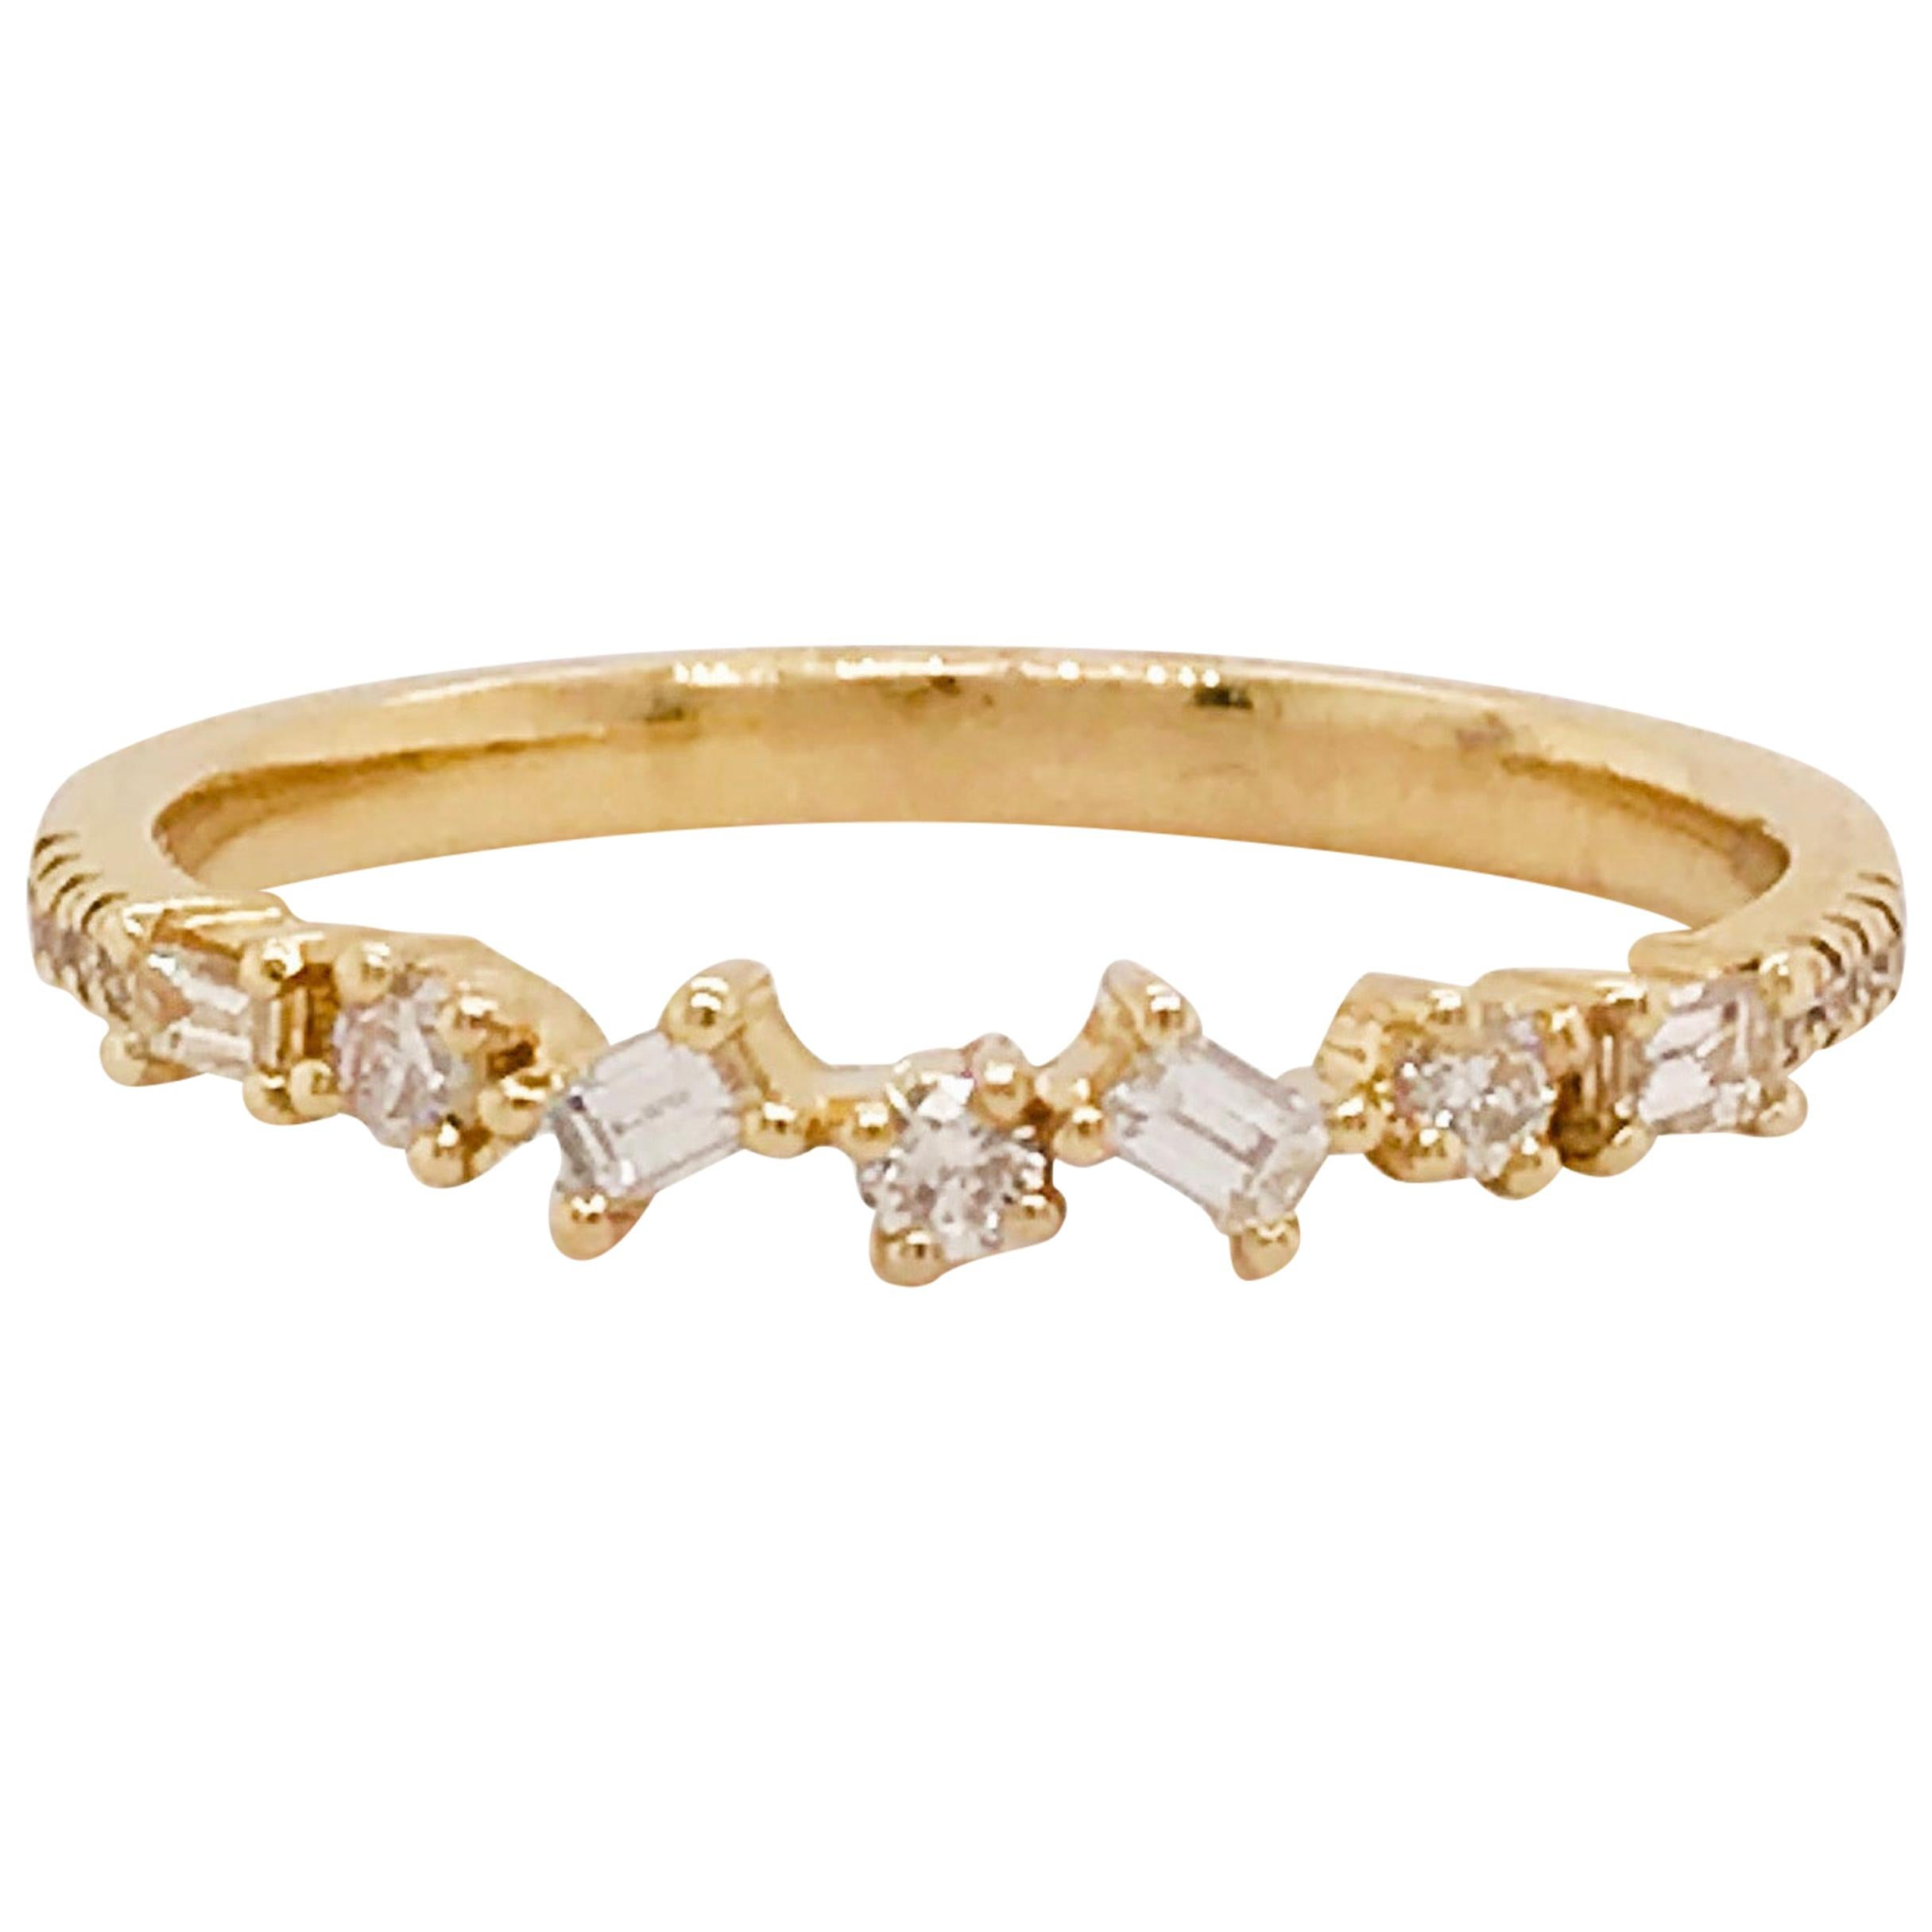 0.17 Carat Diamond Baguette and Round Ring, Stackable Diamond Band in 14k Gold